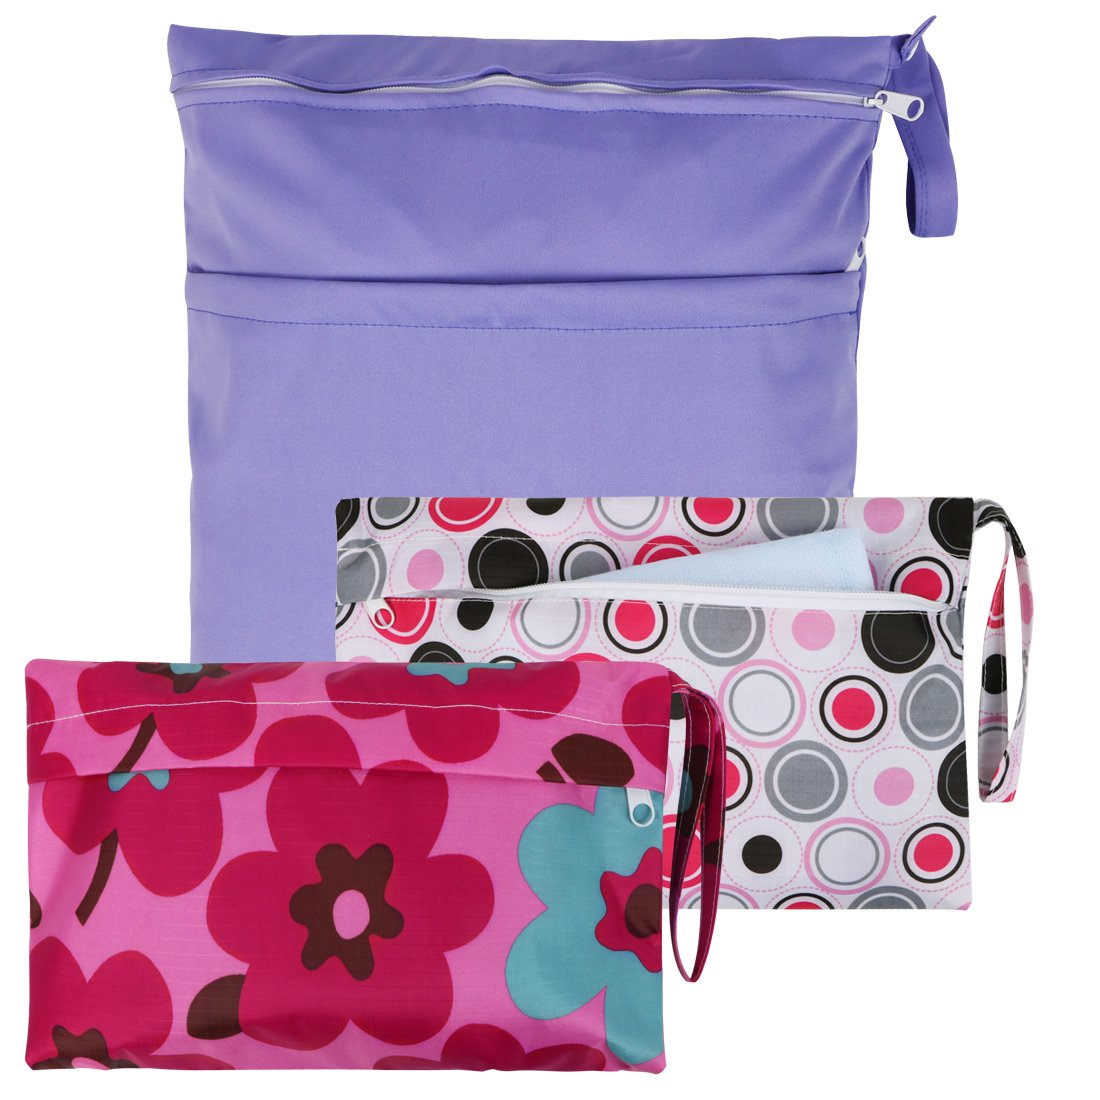 KF Baby Waterproof Cloth Diaper Travel Wet Dry Bag, Small Large Combo, Set of 3 by KF baby